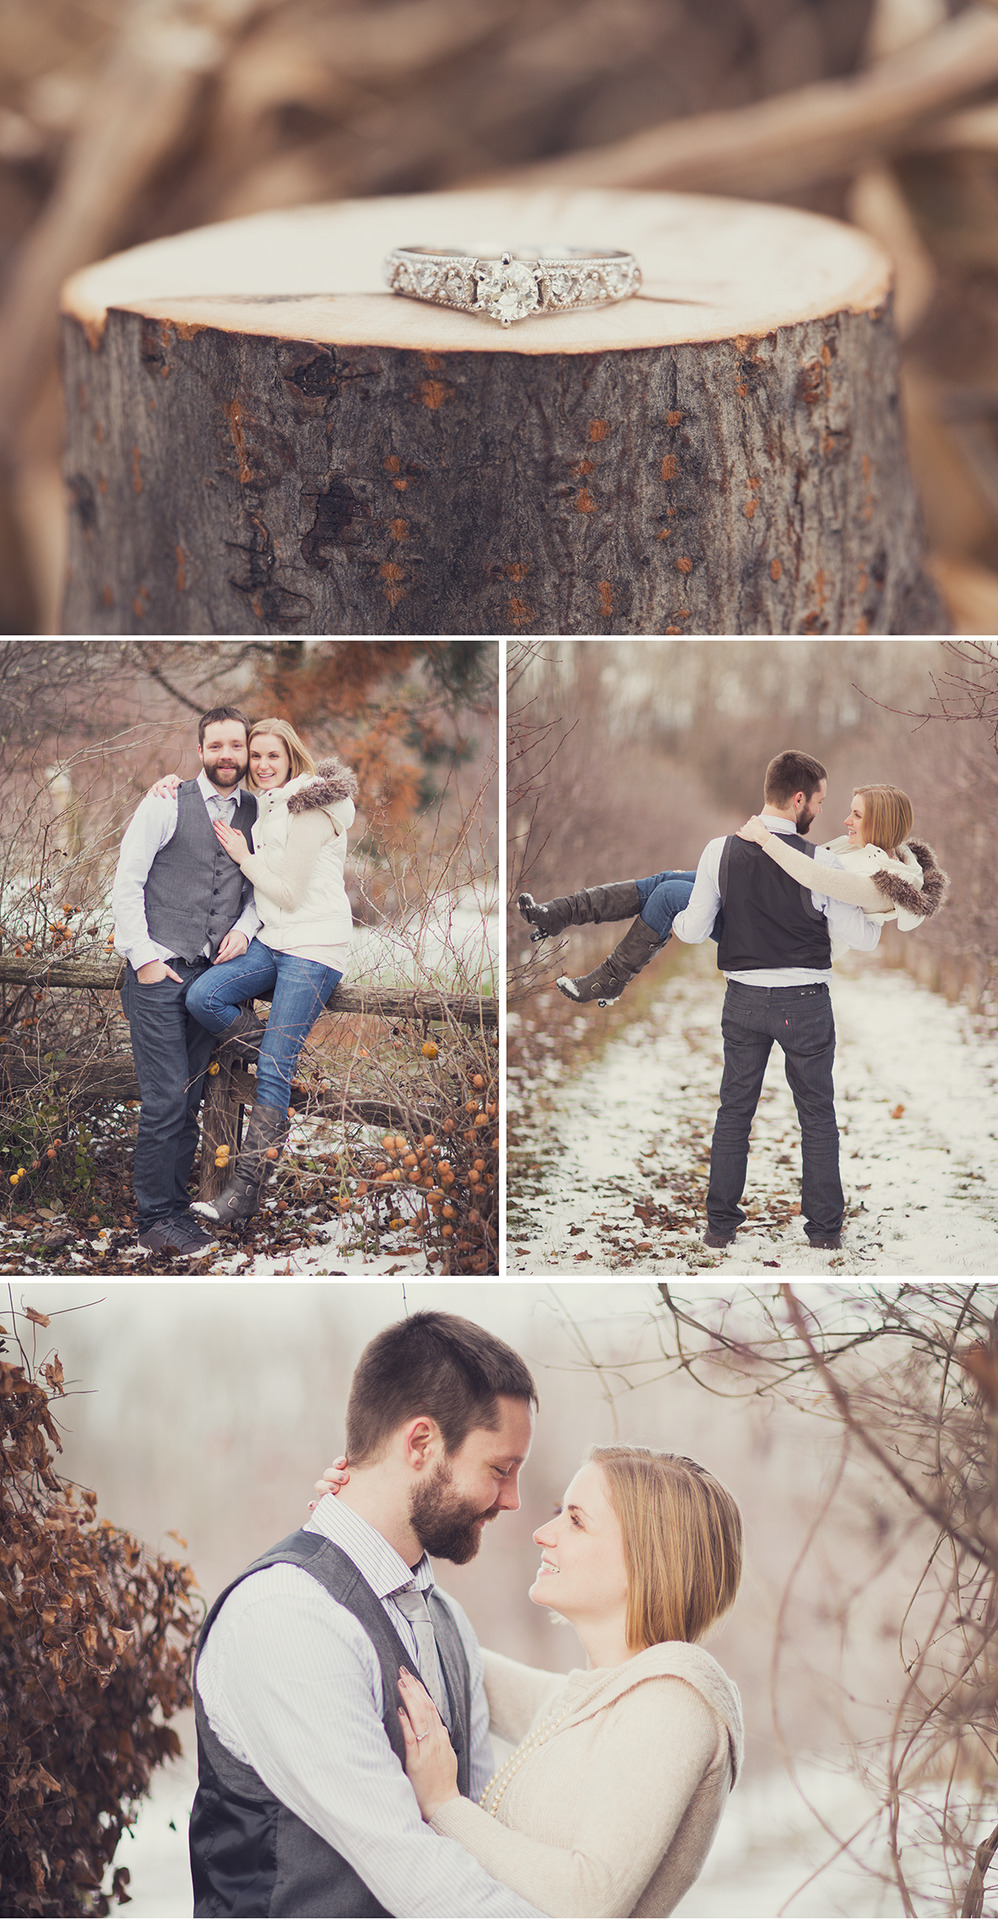 Another beautiful but cold winter engagement shoot! Stacey & John!